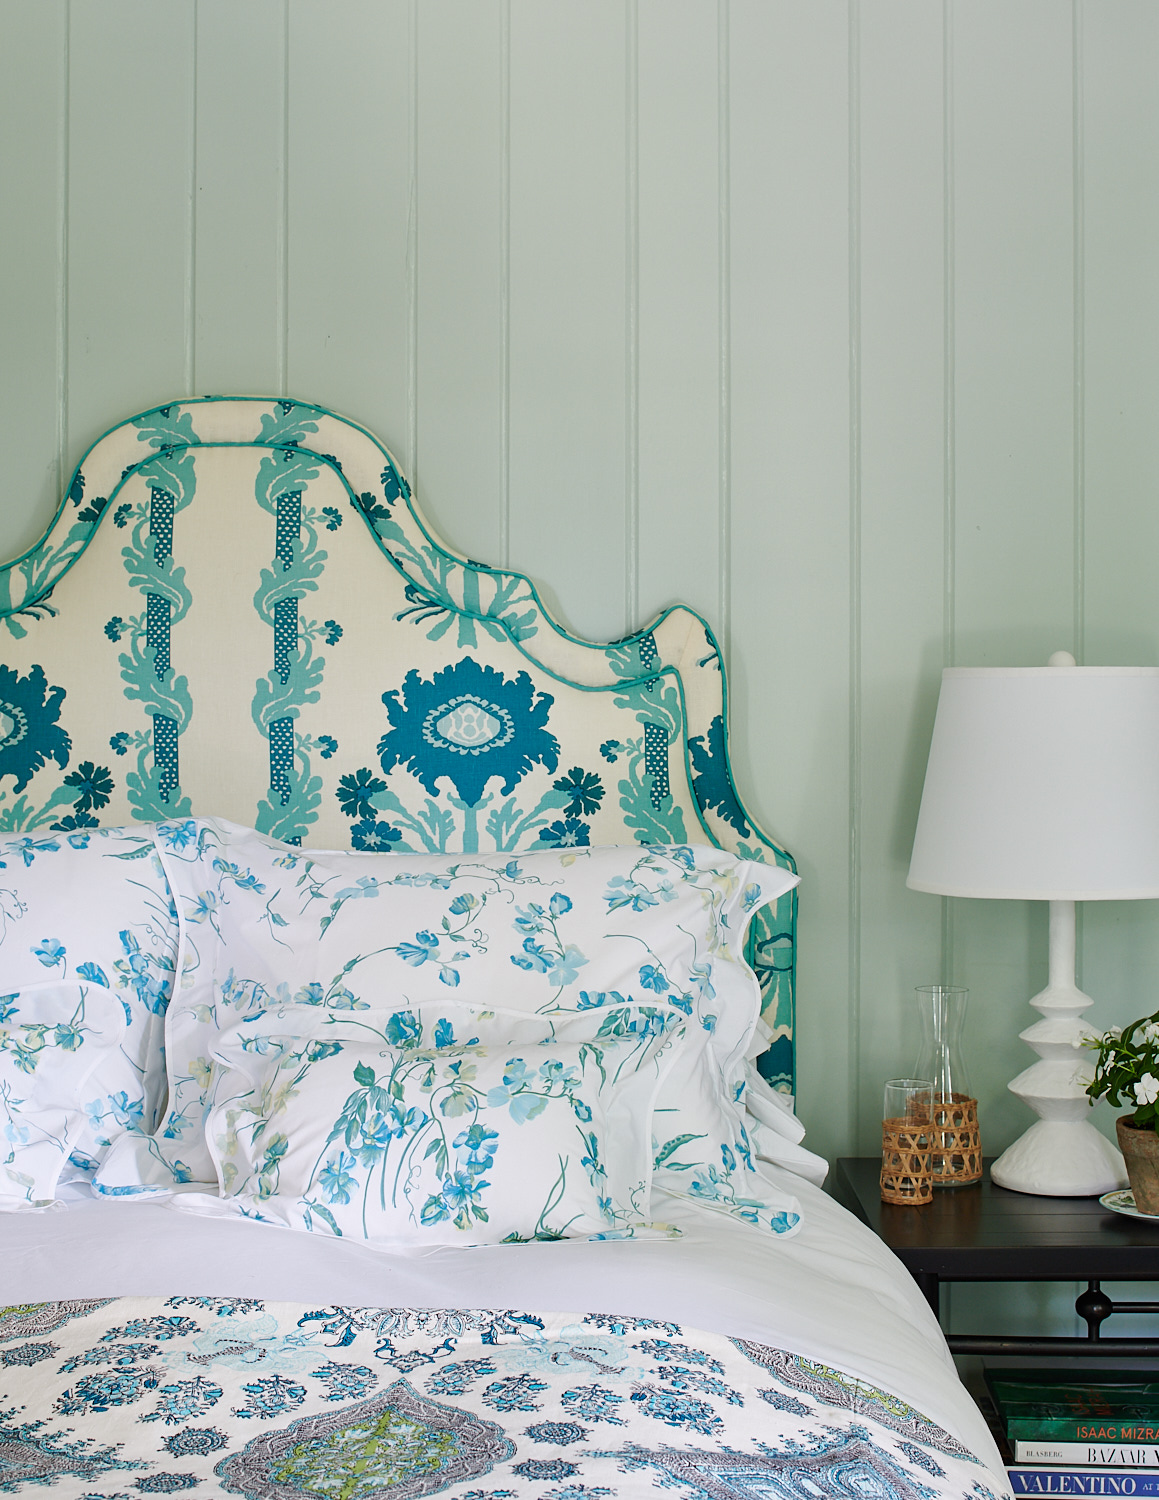 Upholstered headboard with shams pillows